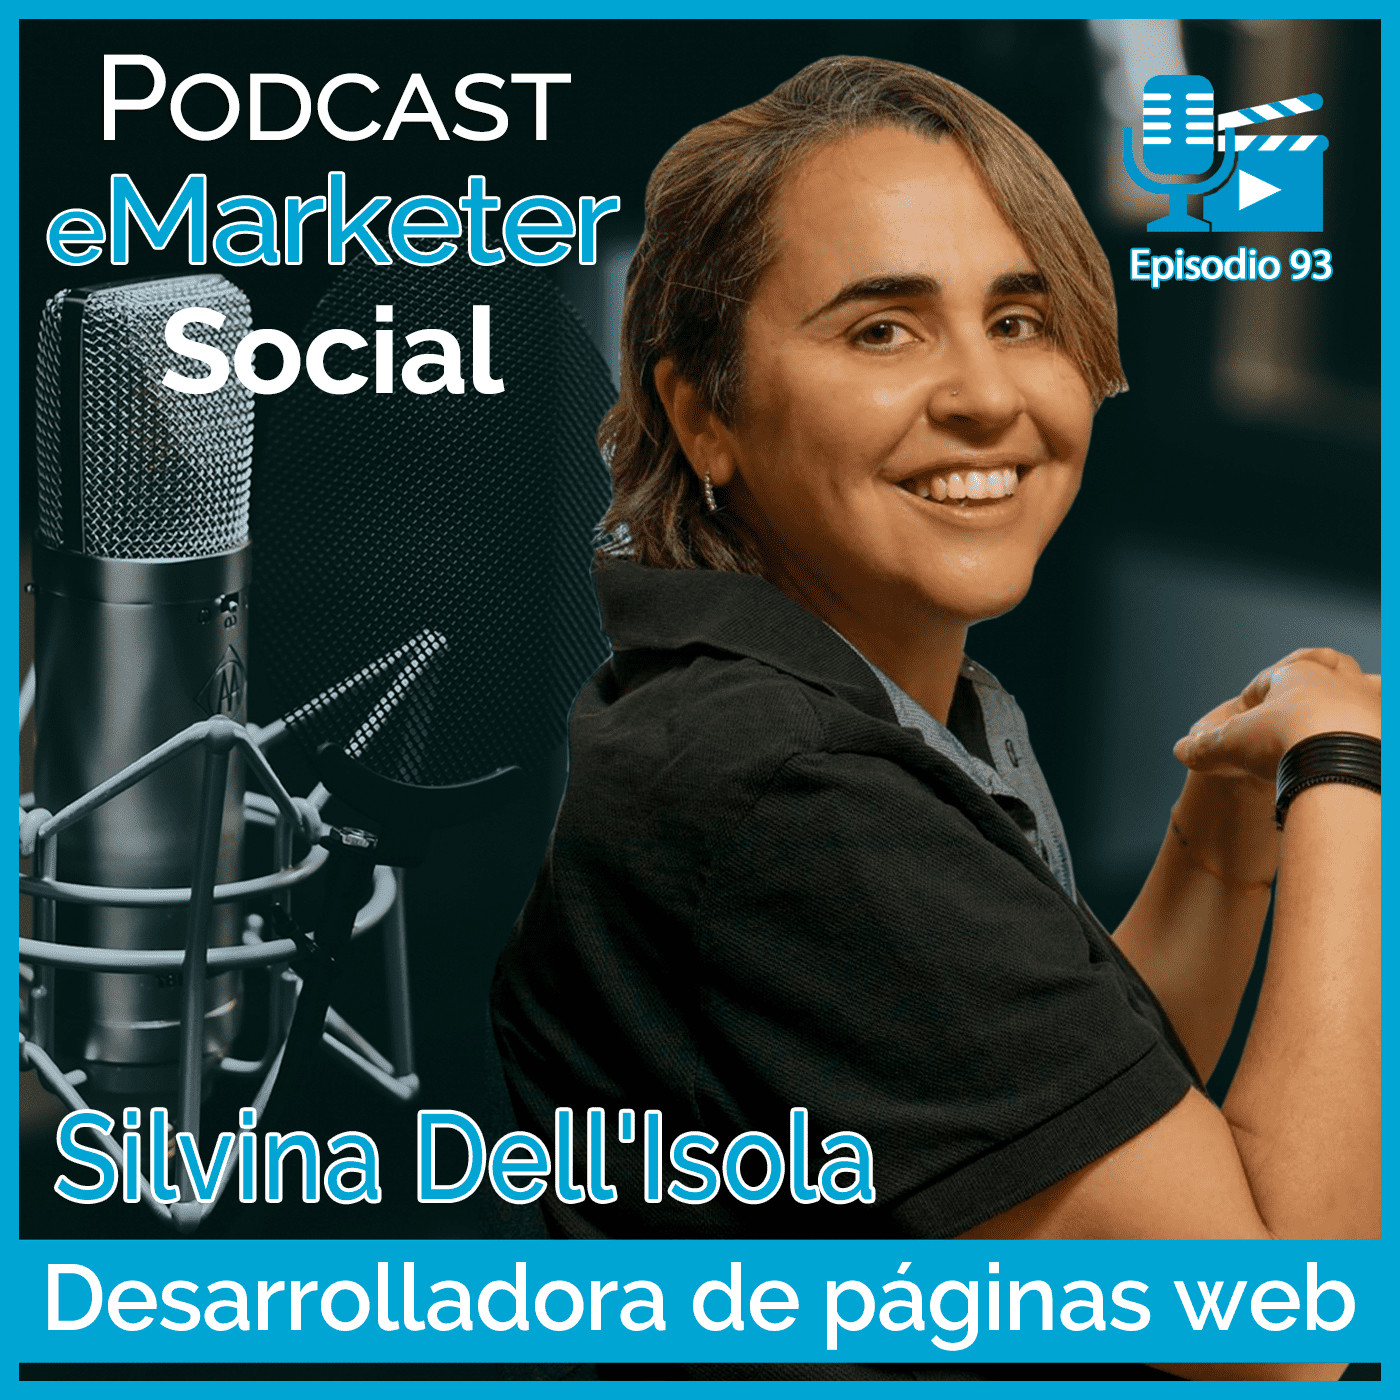 093 Entrevista con Silvina Dell'Isola en Podcast eMarketerSocial